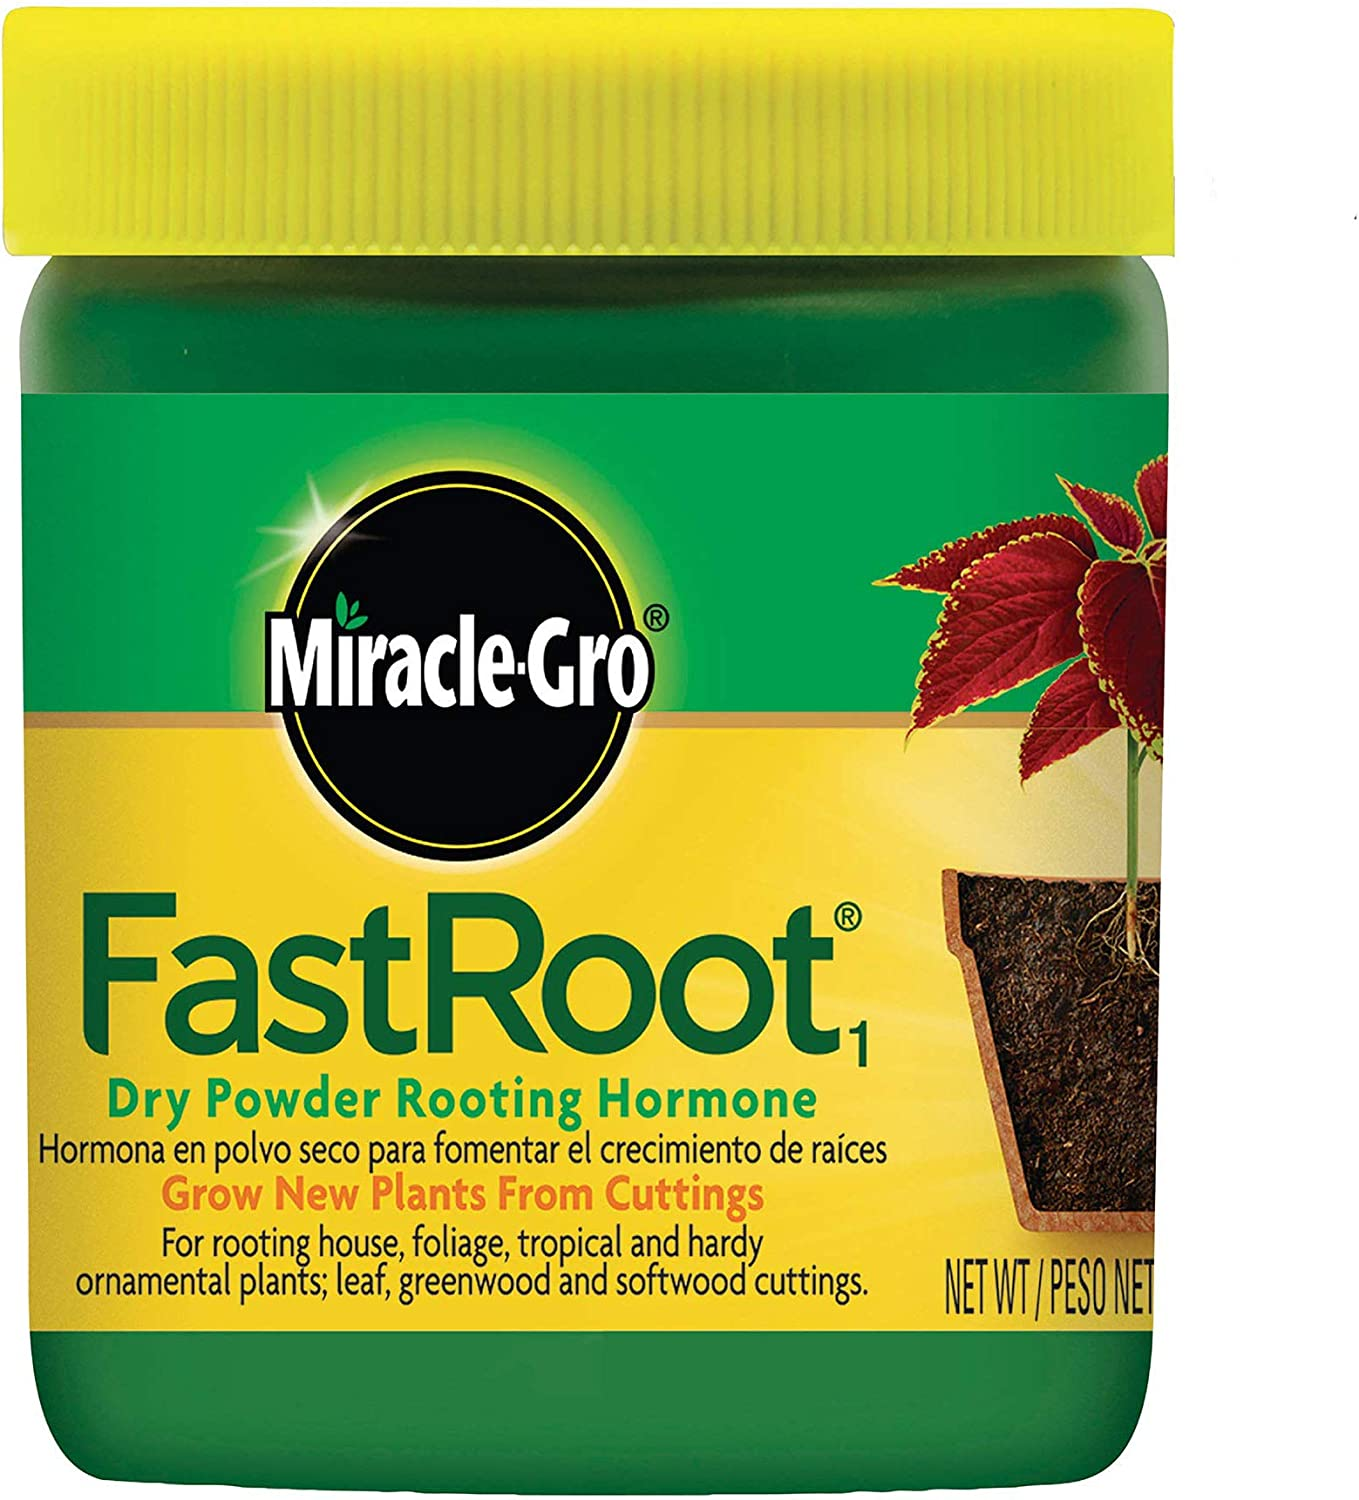 Miracle-Gro FastRoot1 Dry Powder Rooting Hormone 1.25 oz., Houseplant and Succulent Propagation, for Rooting House, Foliage, Tropical, and Hardy Ornamental Plants : Root Tone : Garden & Outdoor